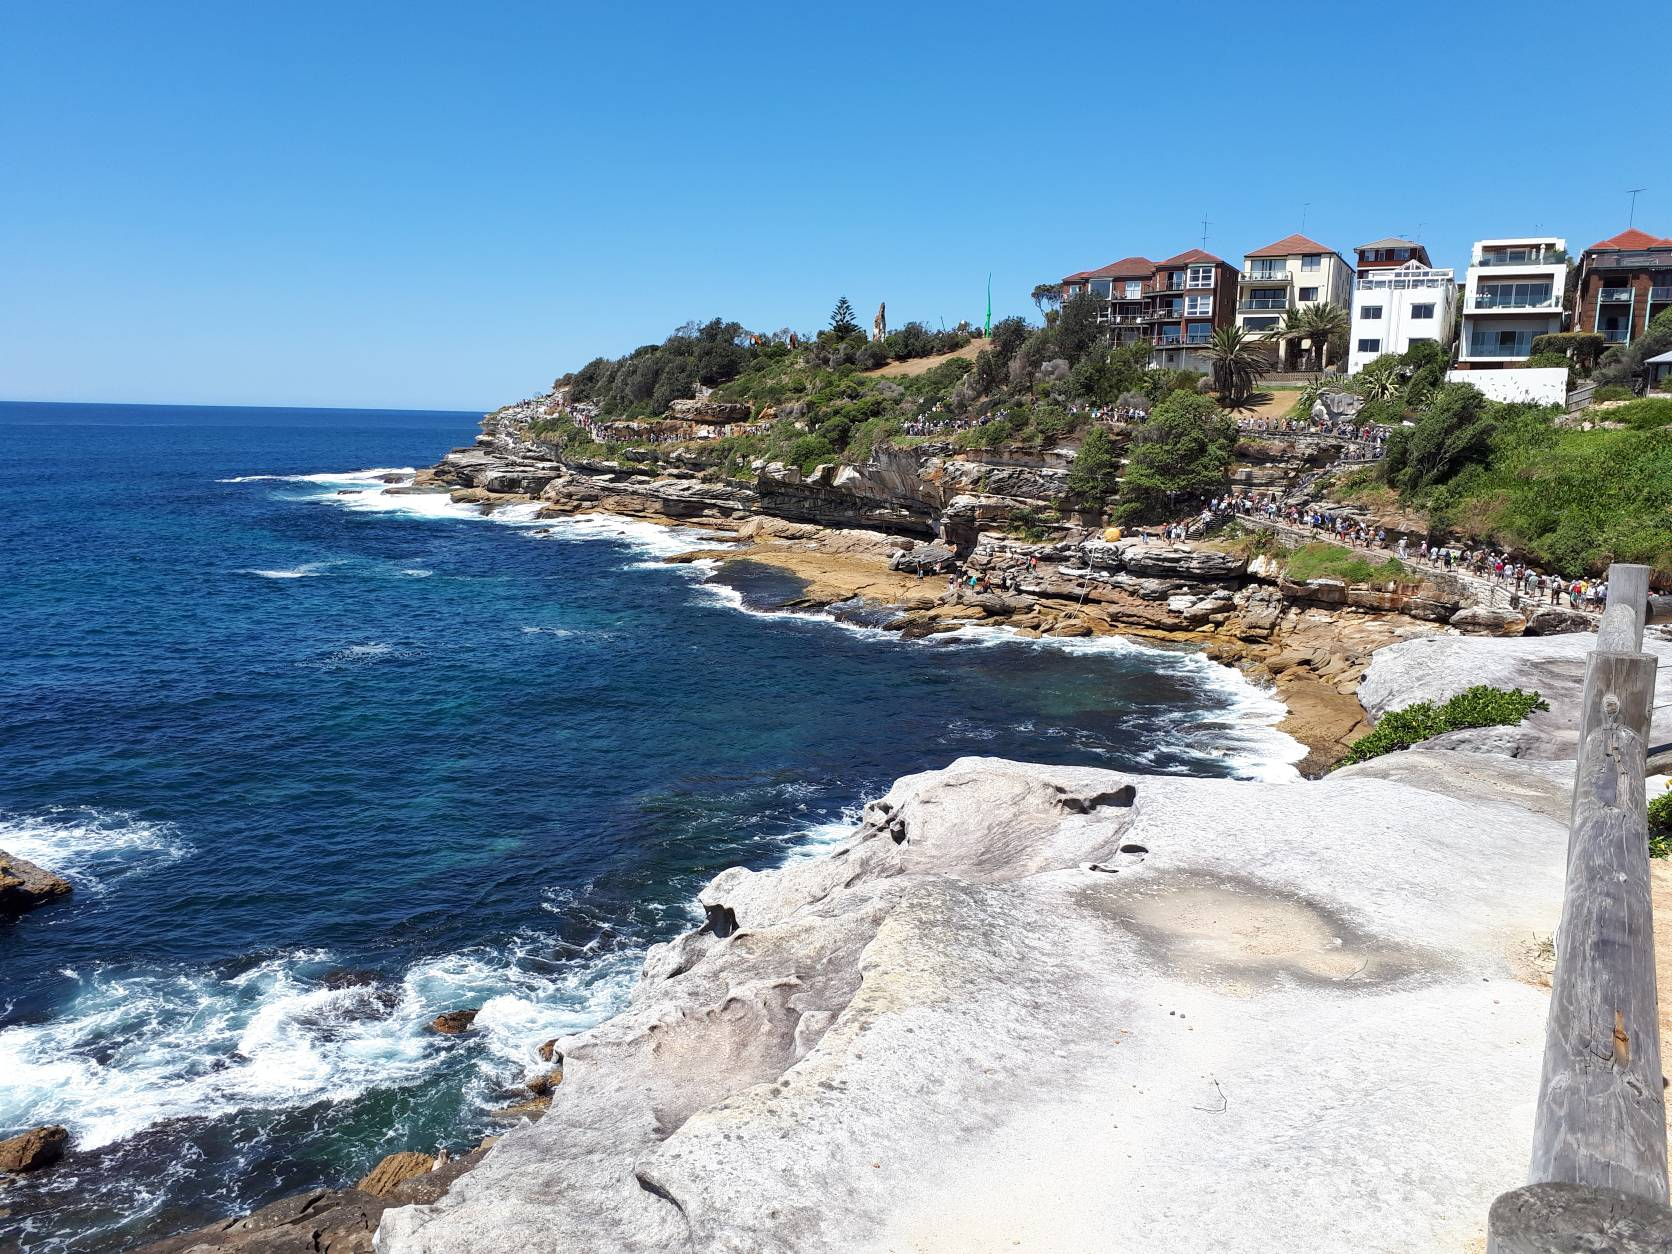 Bondi beach in Sydney, my second favorite city...